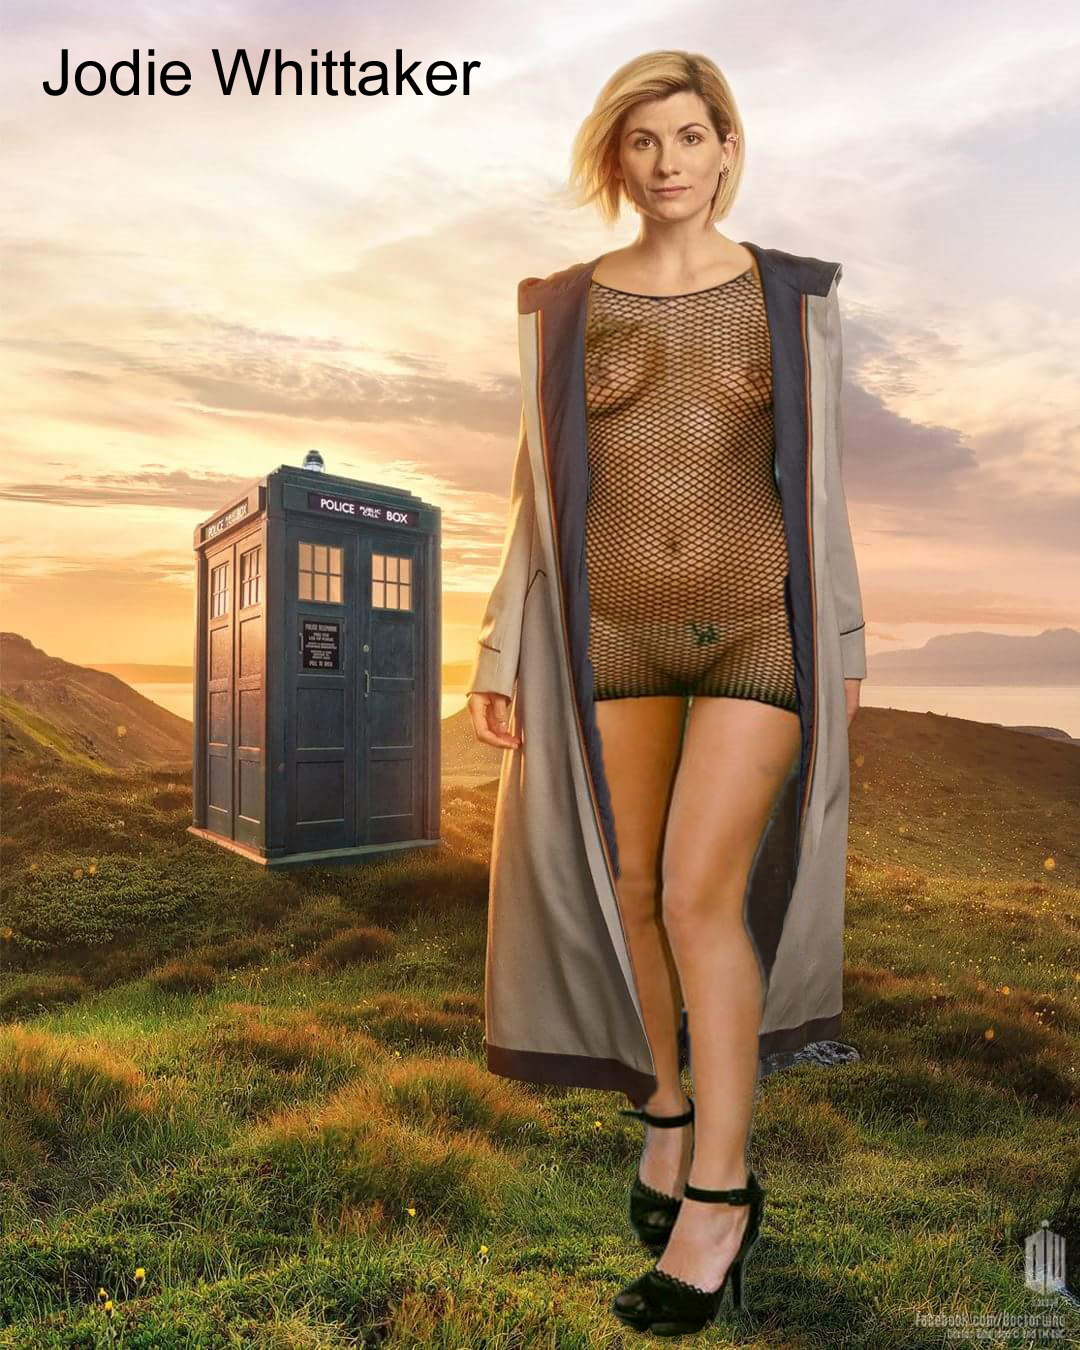 Jodie whittaker nude photos